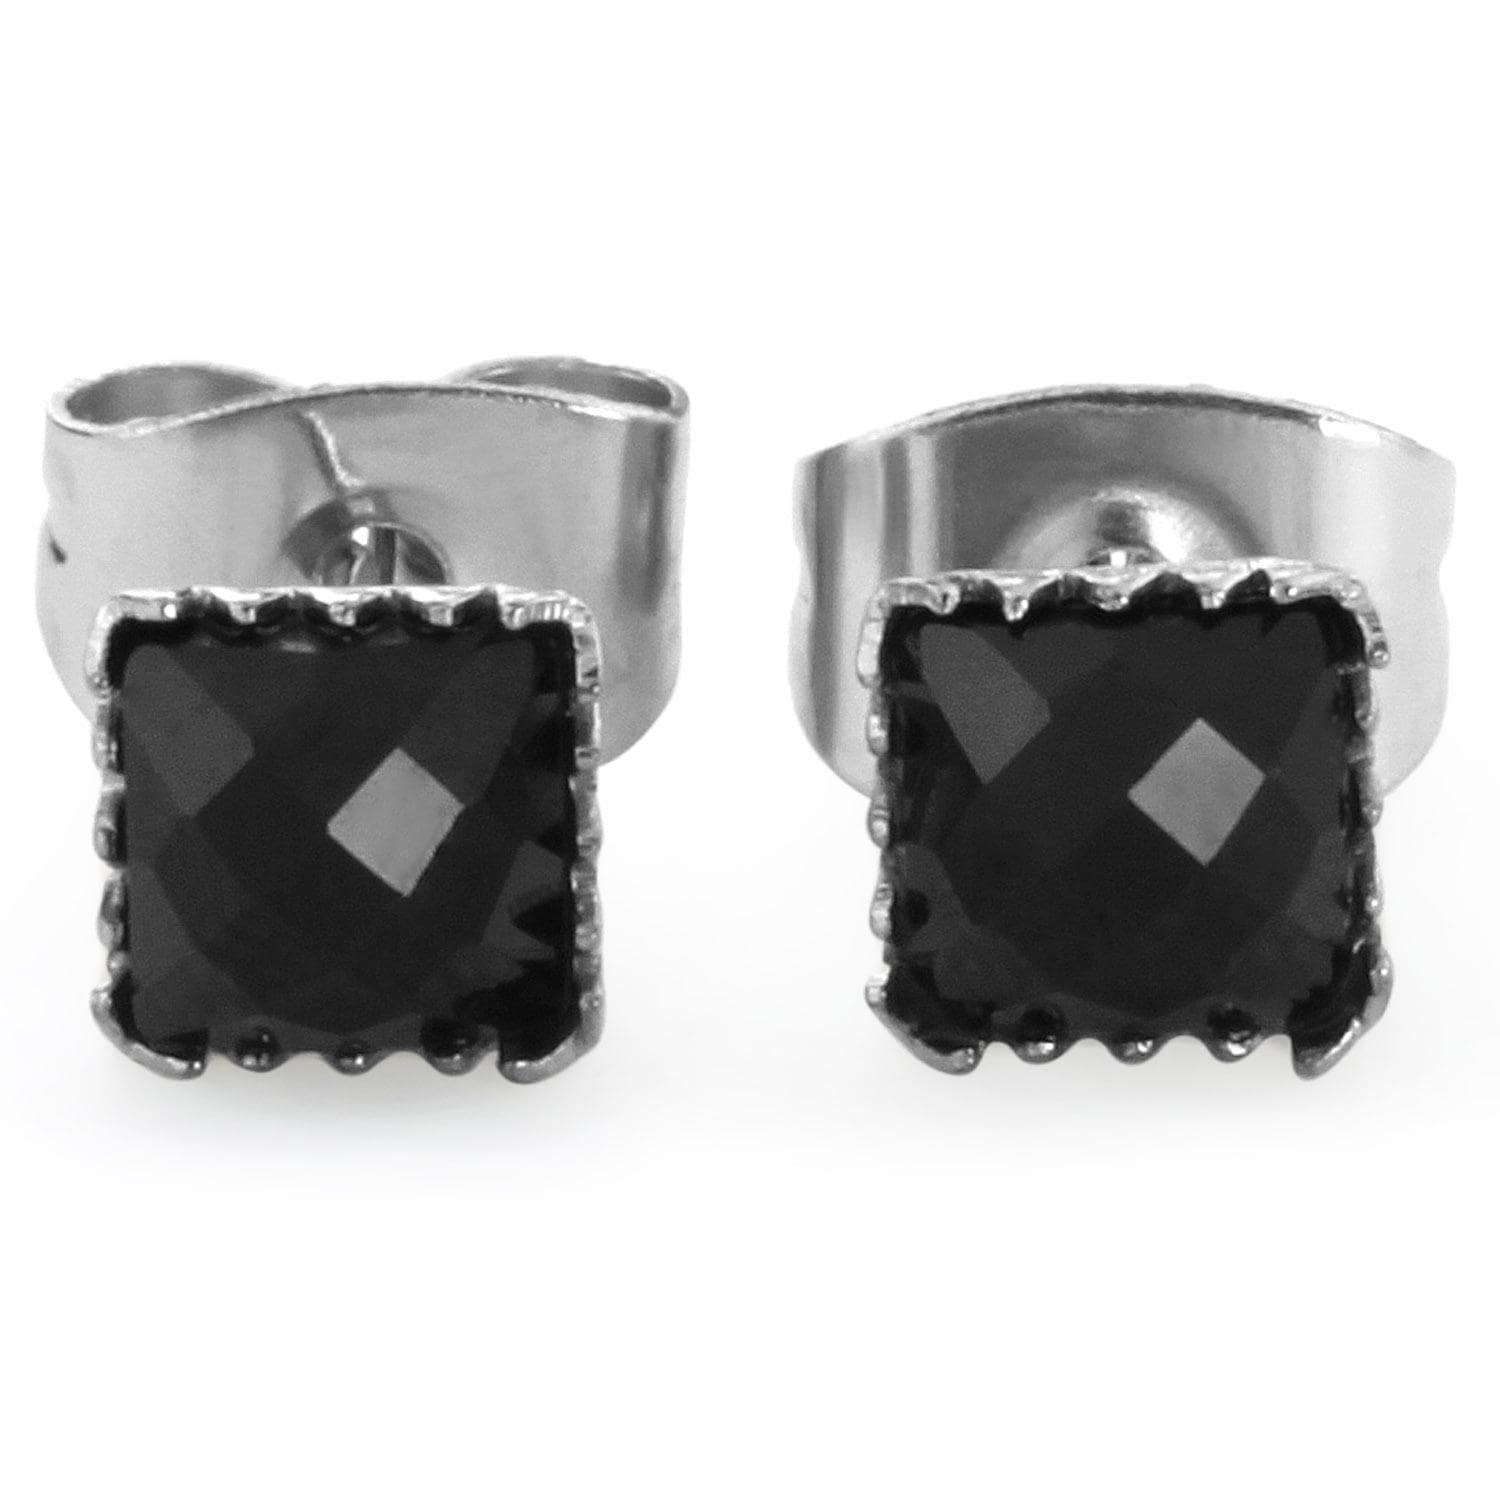 Pair of 316L Surgical Steel Faceted Square Black Onyx Gem Earrings - 4 mm